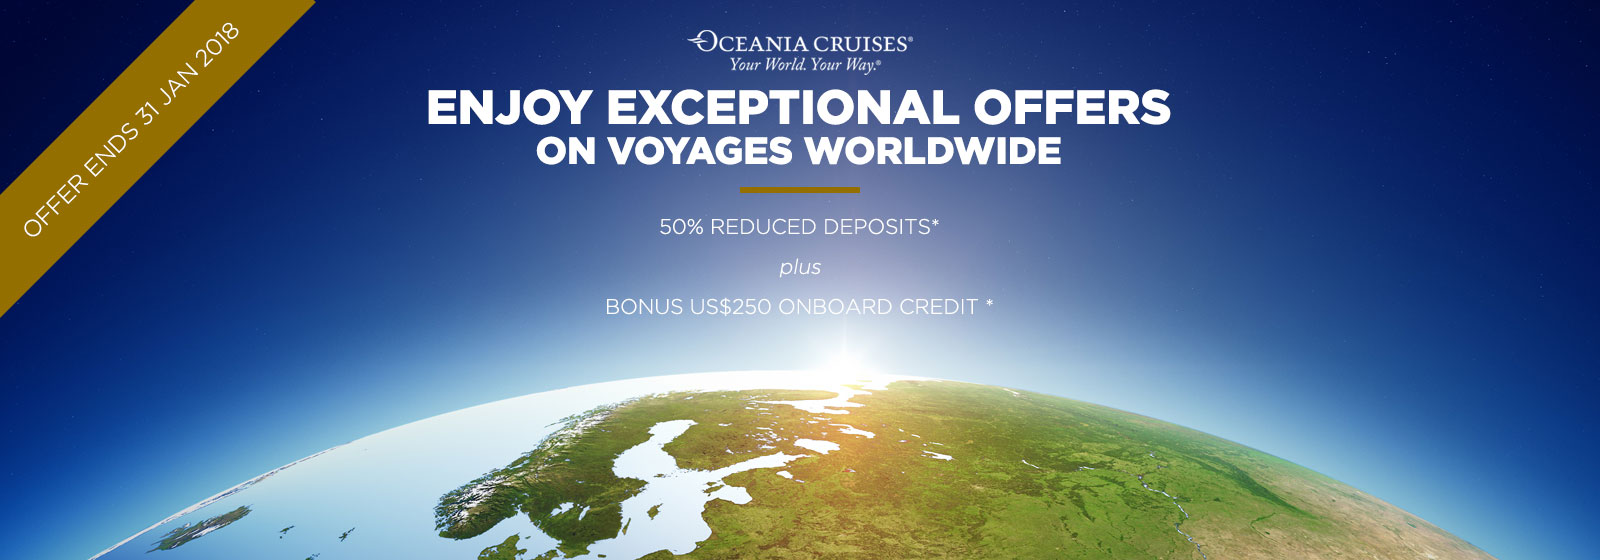 Oceania Wave Offer